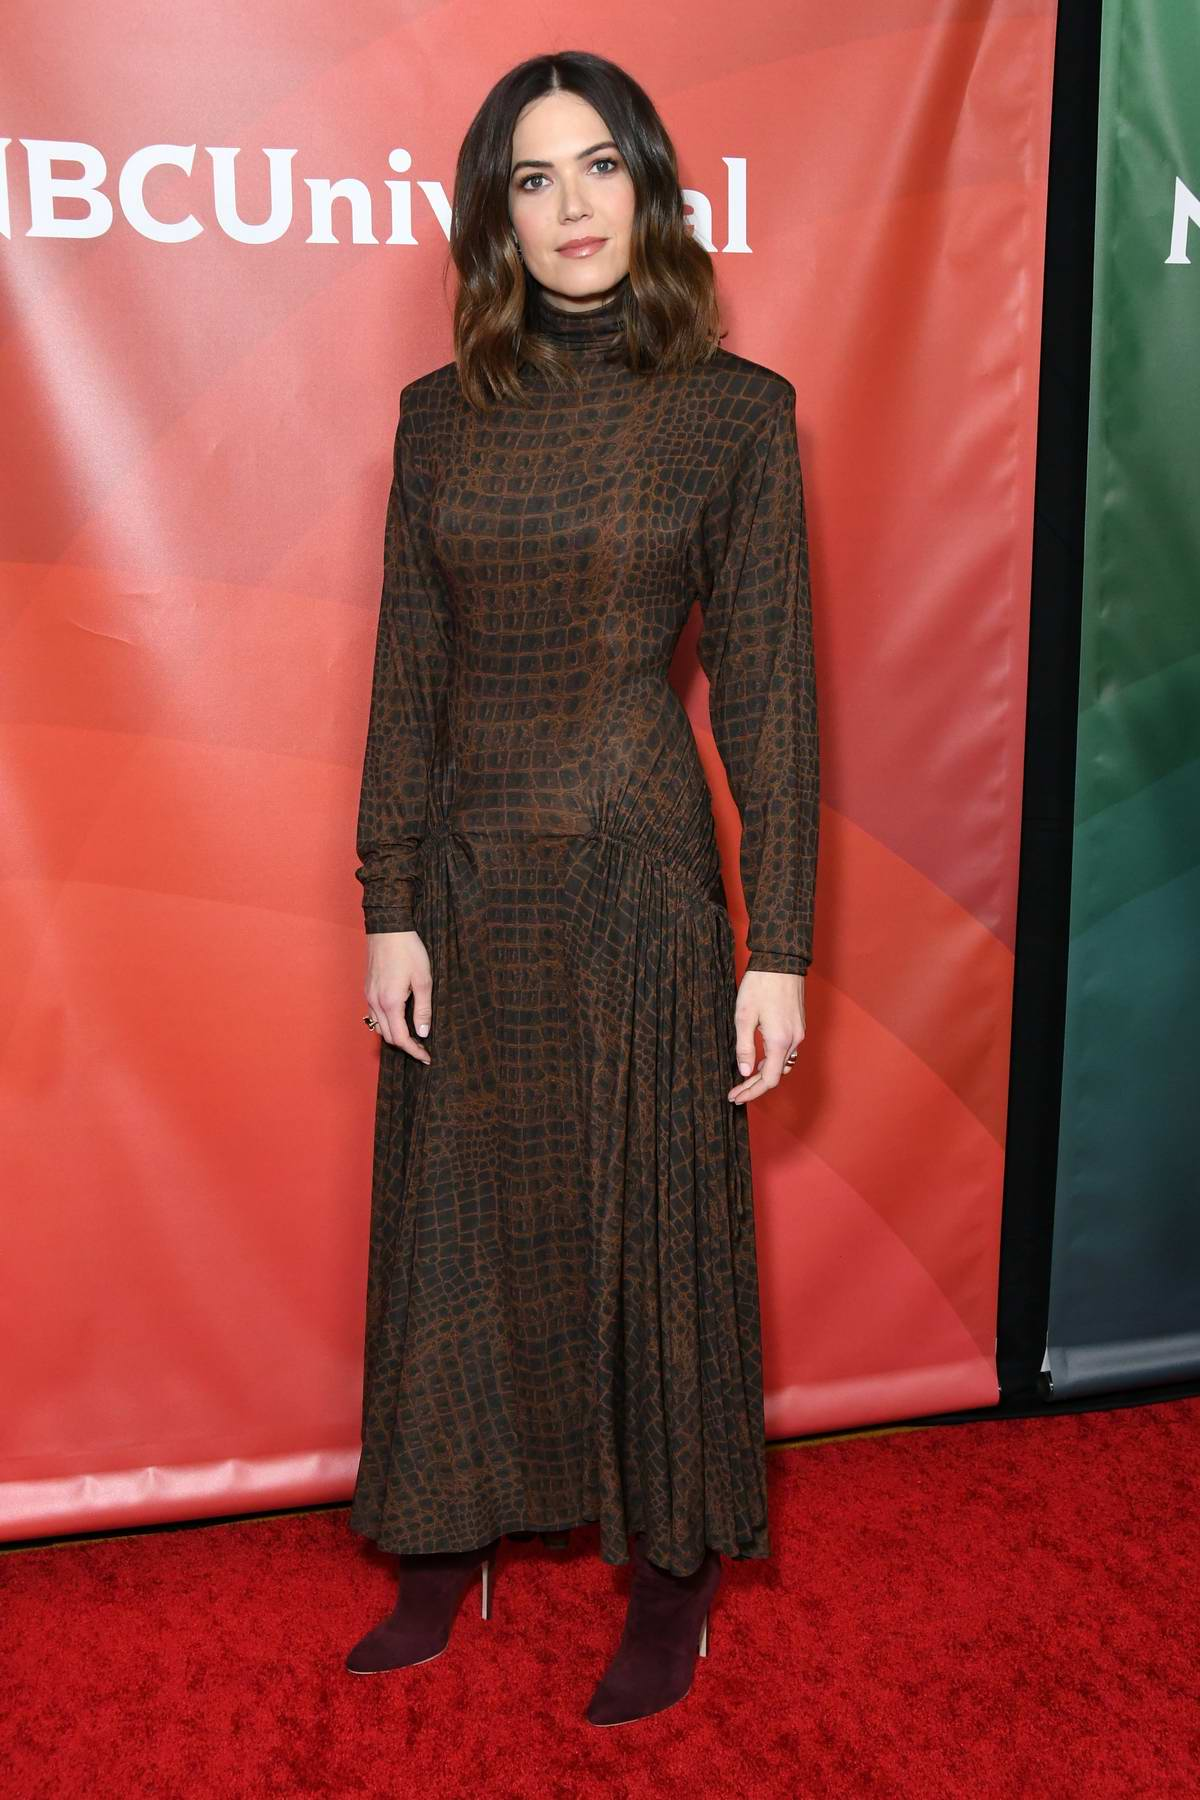 Mandy Moore attends the NBC Universal TCA Winter Press Tour 2020 at The Langham in Pasadena, California